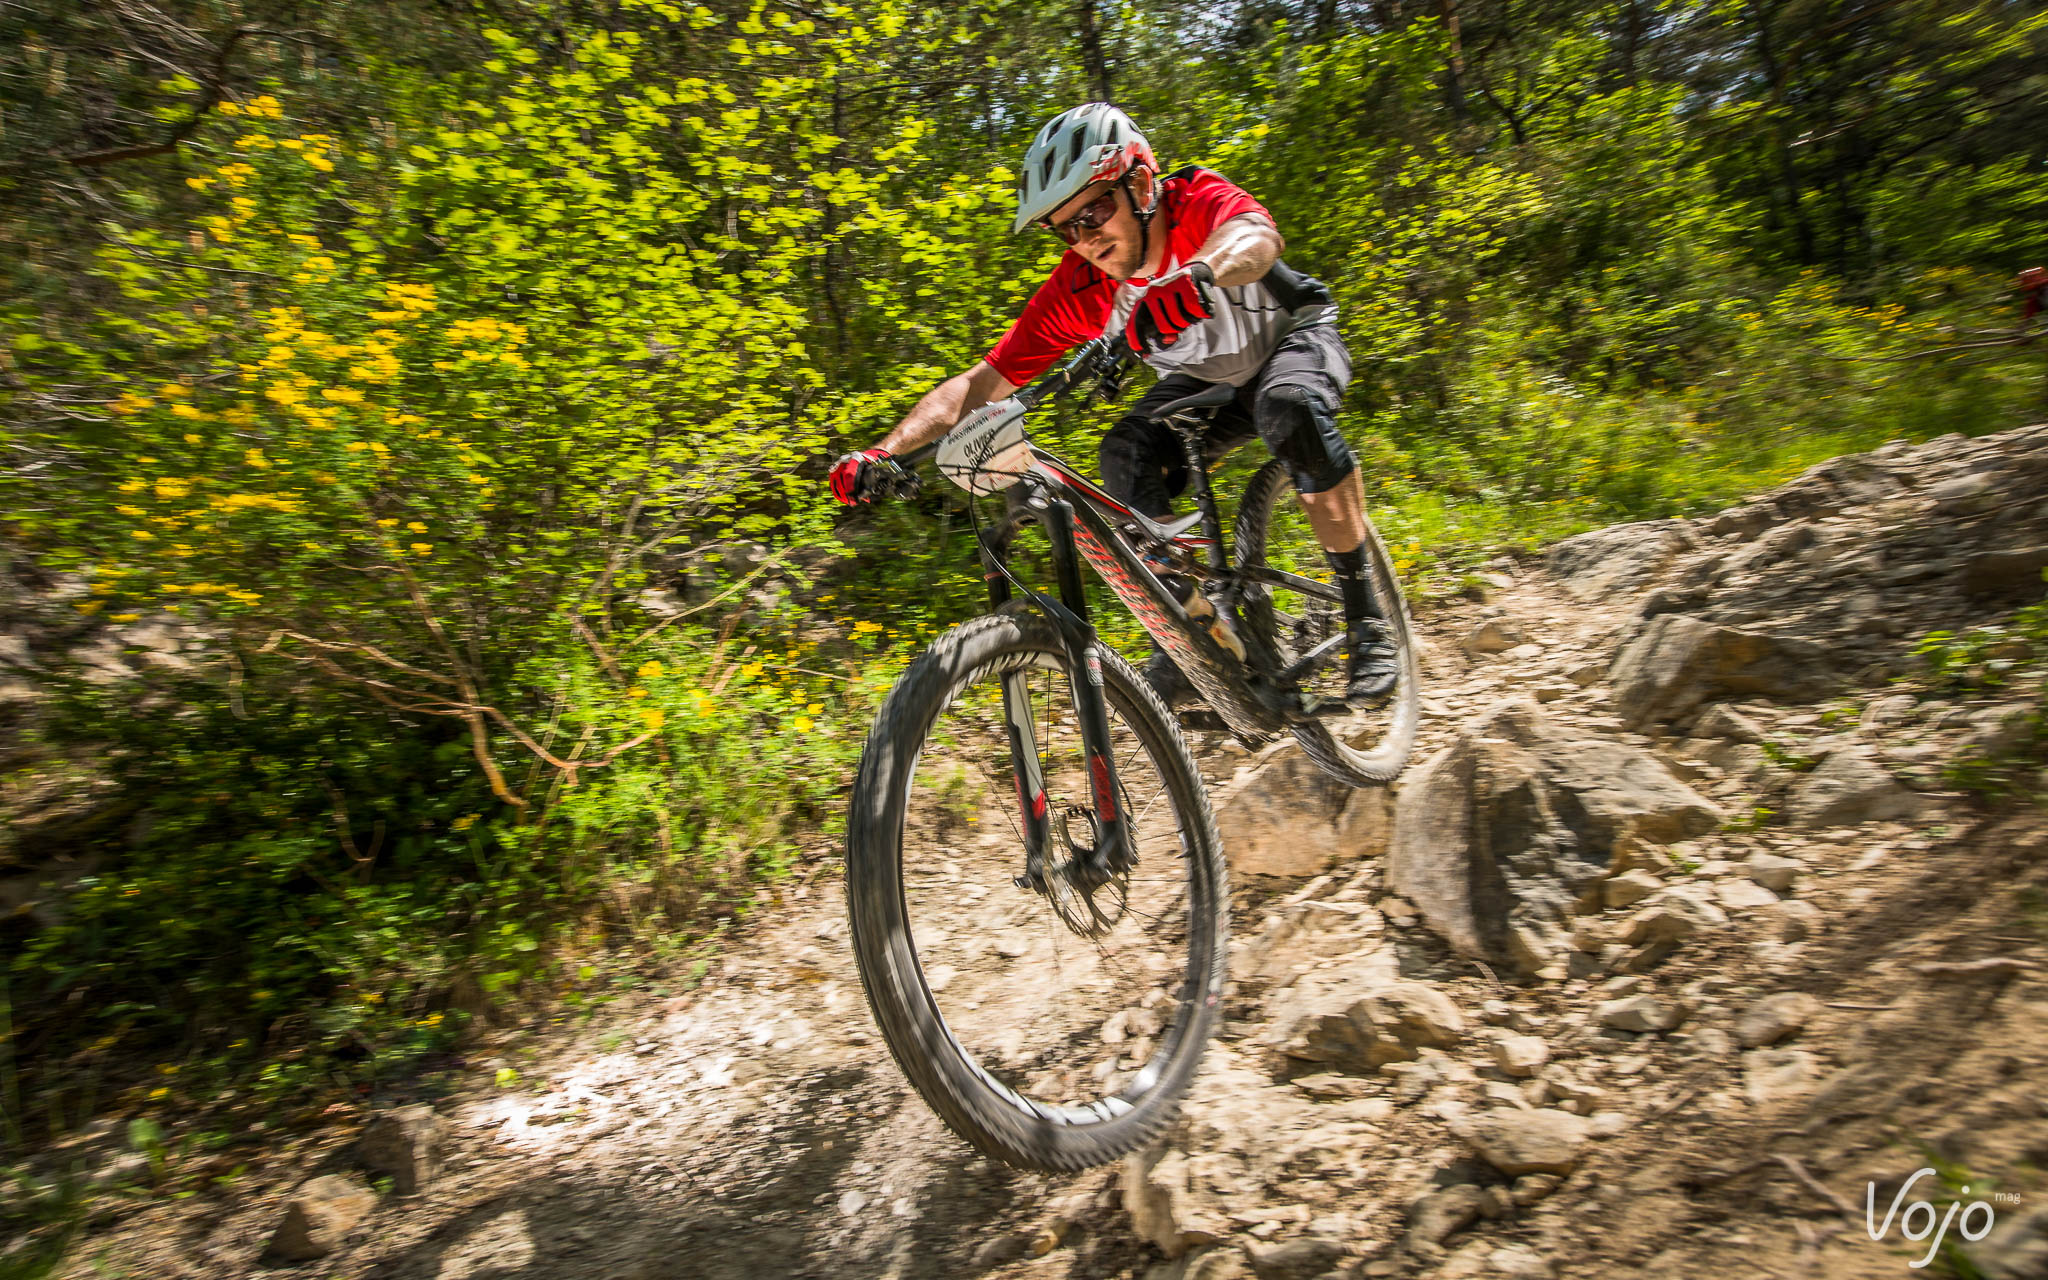 Specialized_Stumpjumper_Action_Copyright_Manu_Molle_VojoMag-8